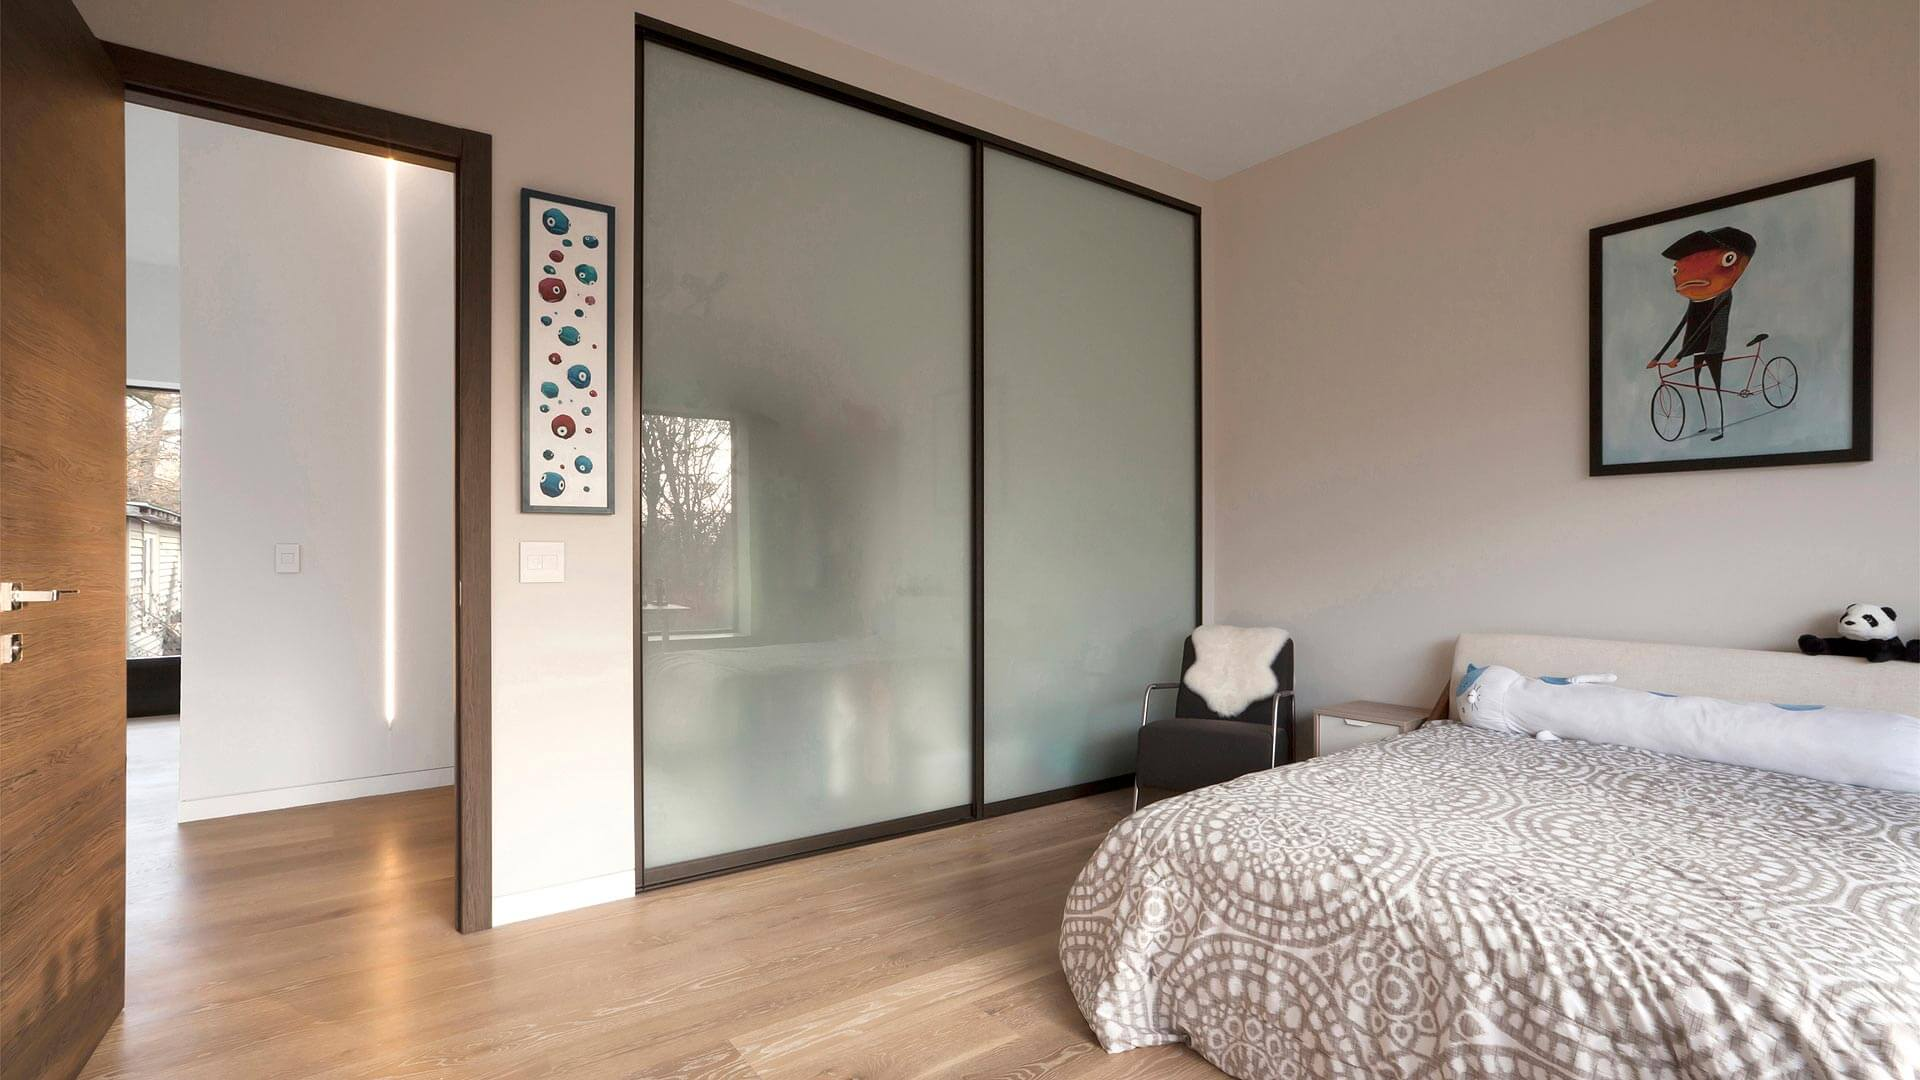 Child Bedroom includes sliding steel/glass closet doors from Germany + colorful modern wall art - Minimalist Modern - Indian Head Park - Chicago, Illinois - HAUS | Architecture For Modern Lifestyles, Christopher Short, Indianapolis Architect with Joe Trojanowski